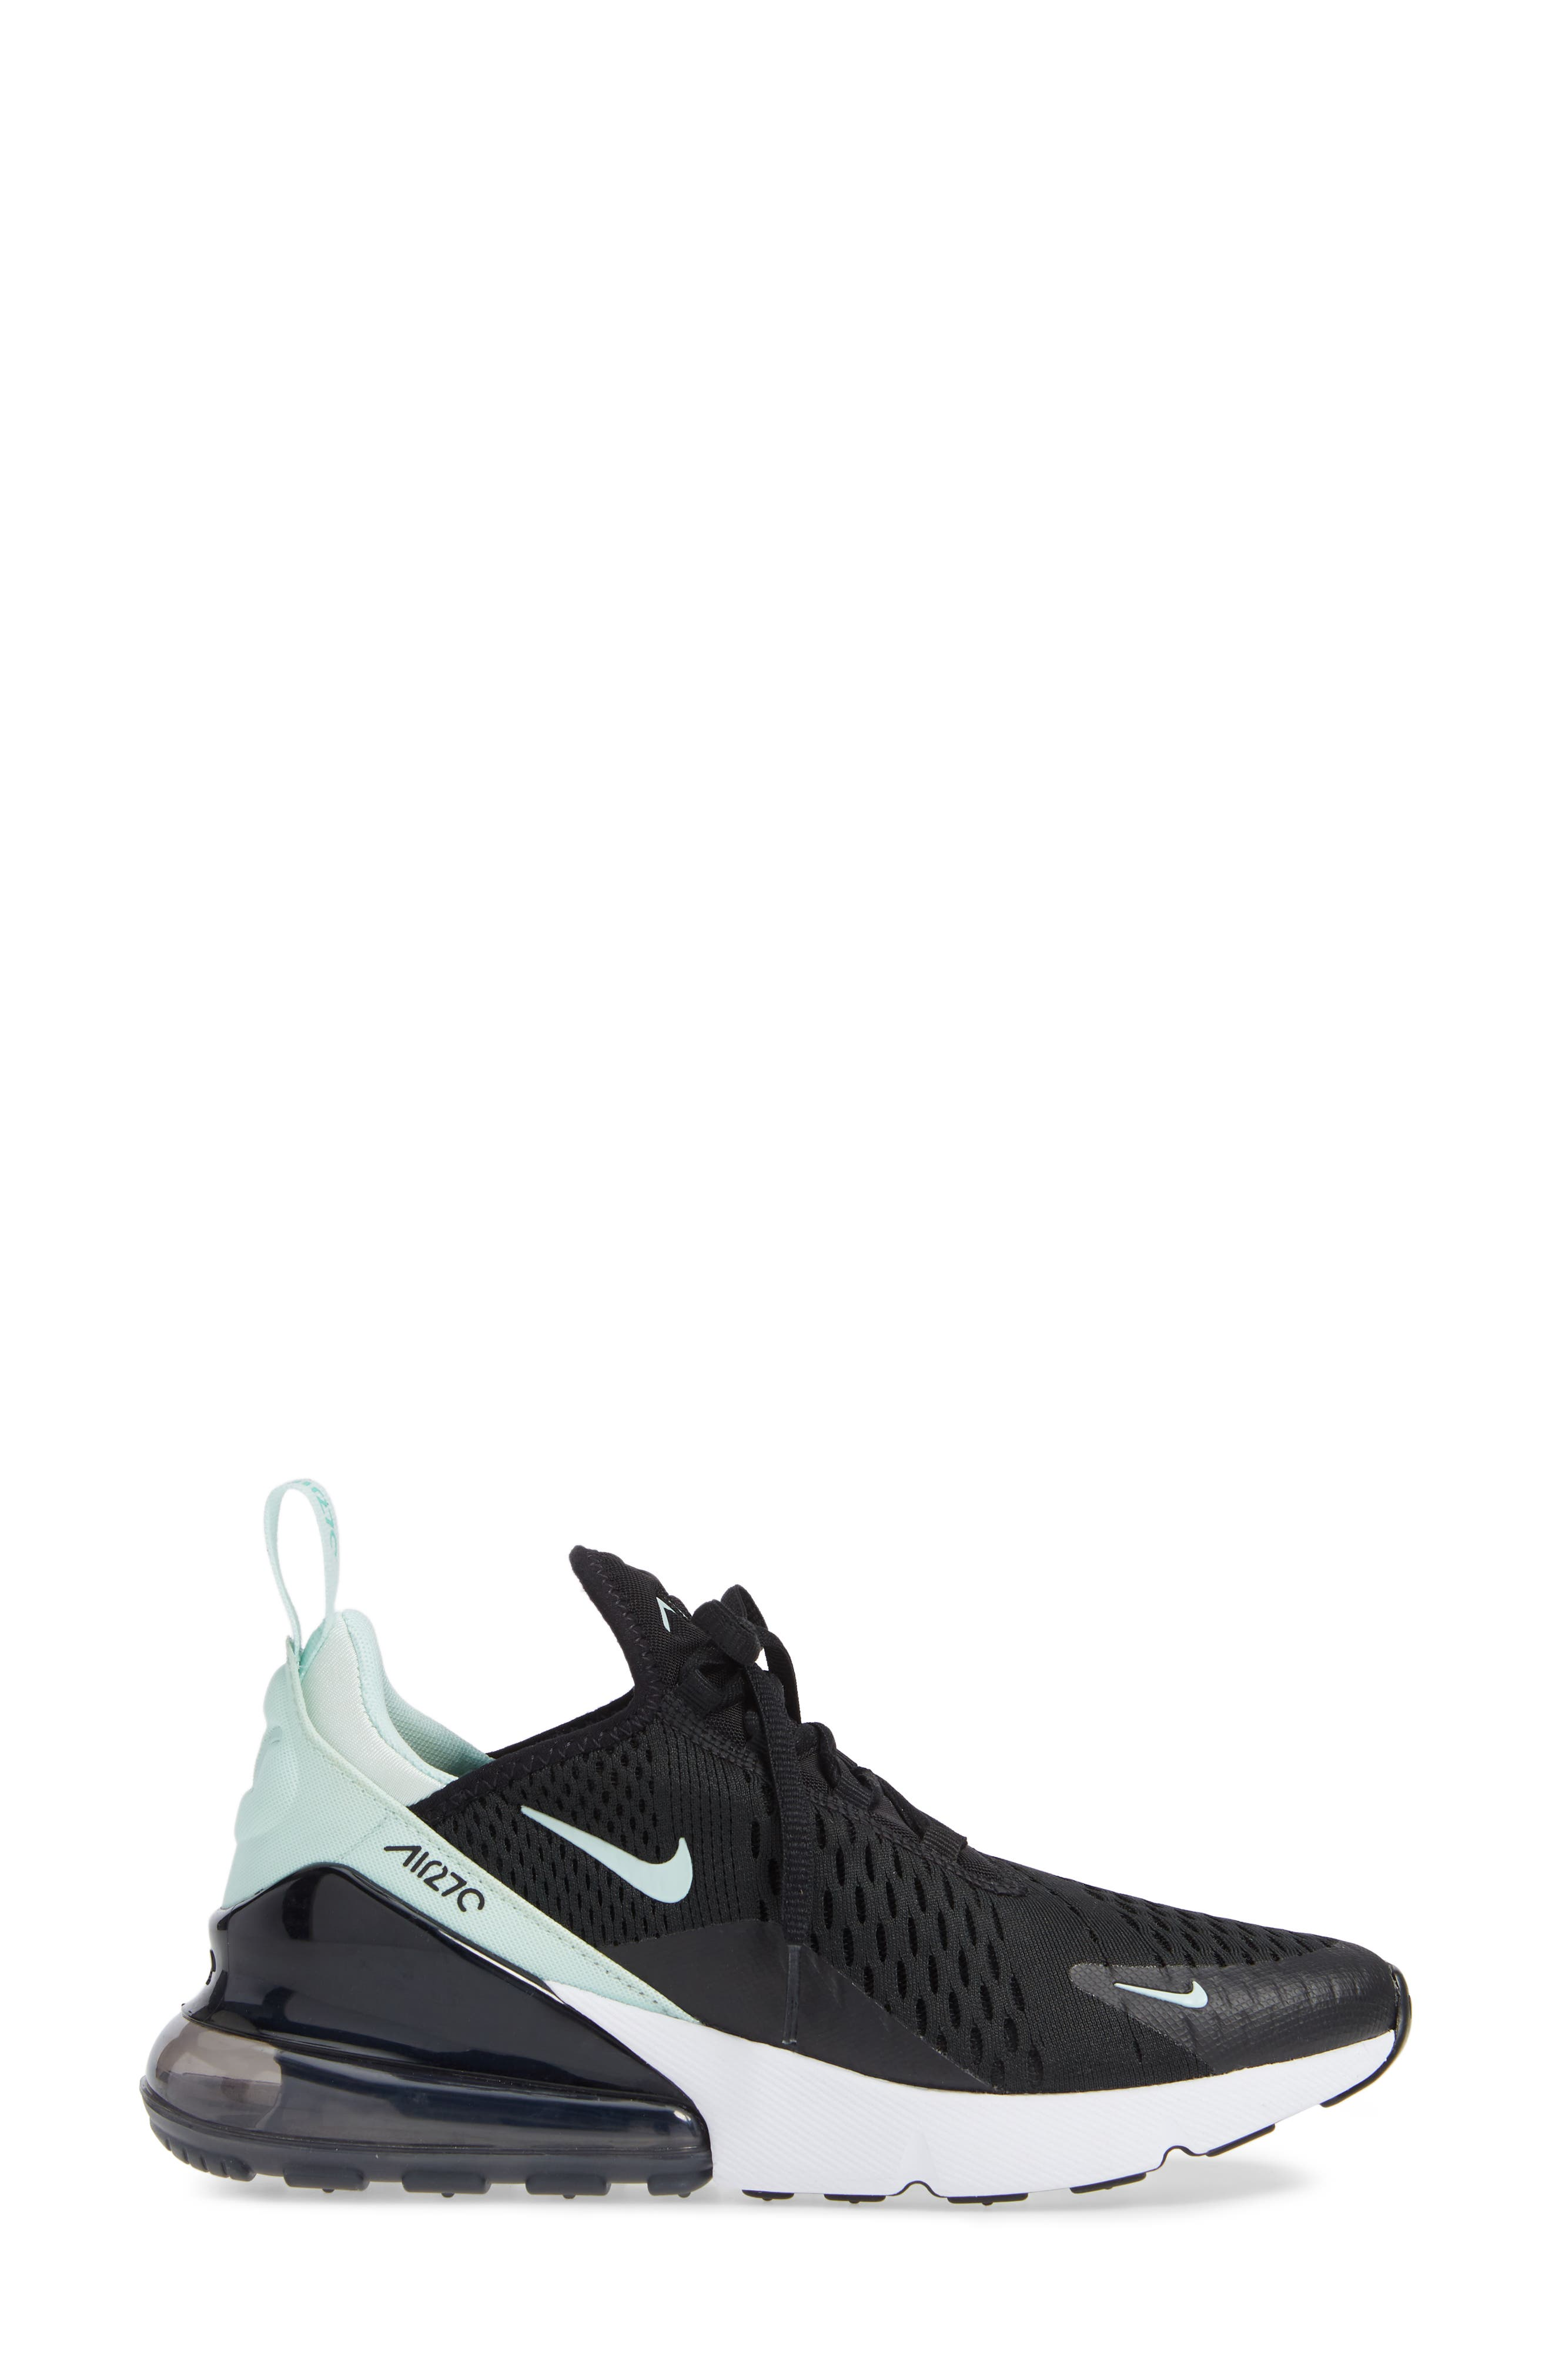 Air Max 270 Premium Sneaker,                             Alternate thumbnail 3, color,                             BLACK/ IGLOO TURQUOISE WHITE